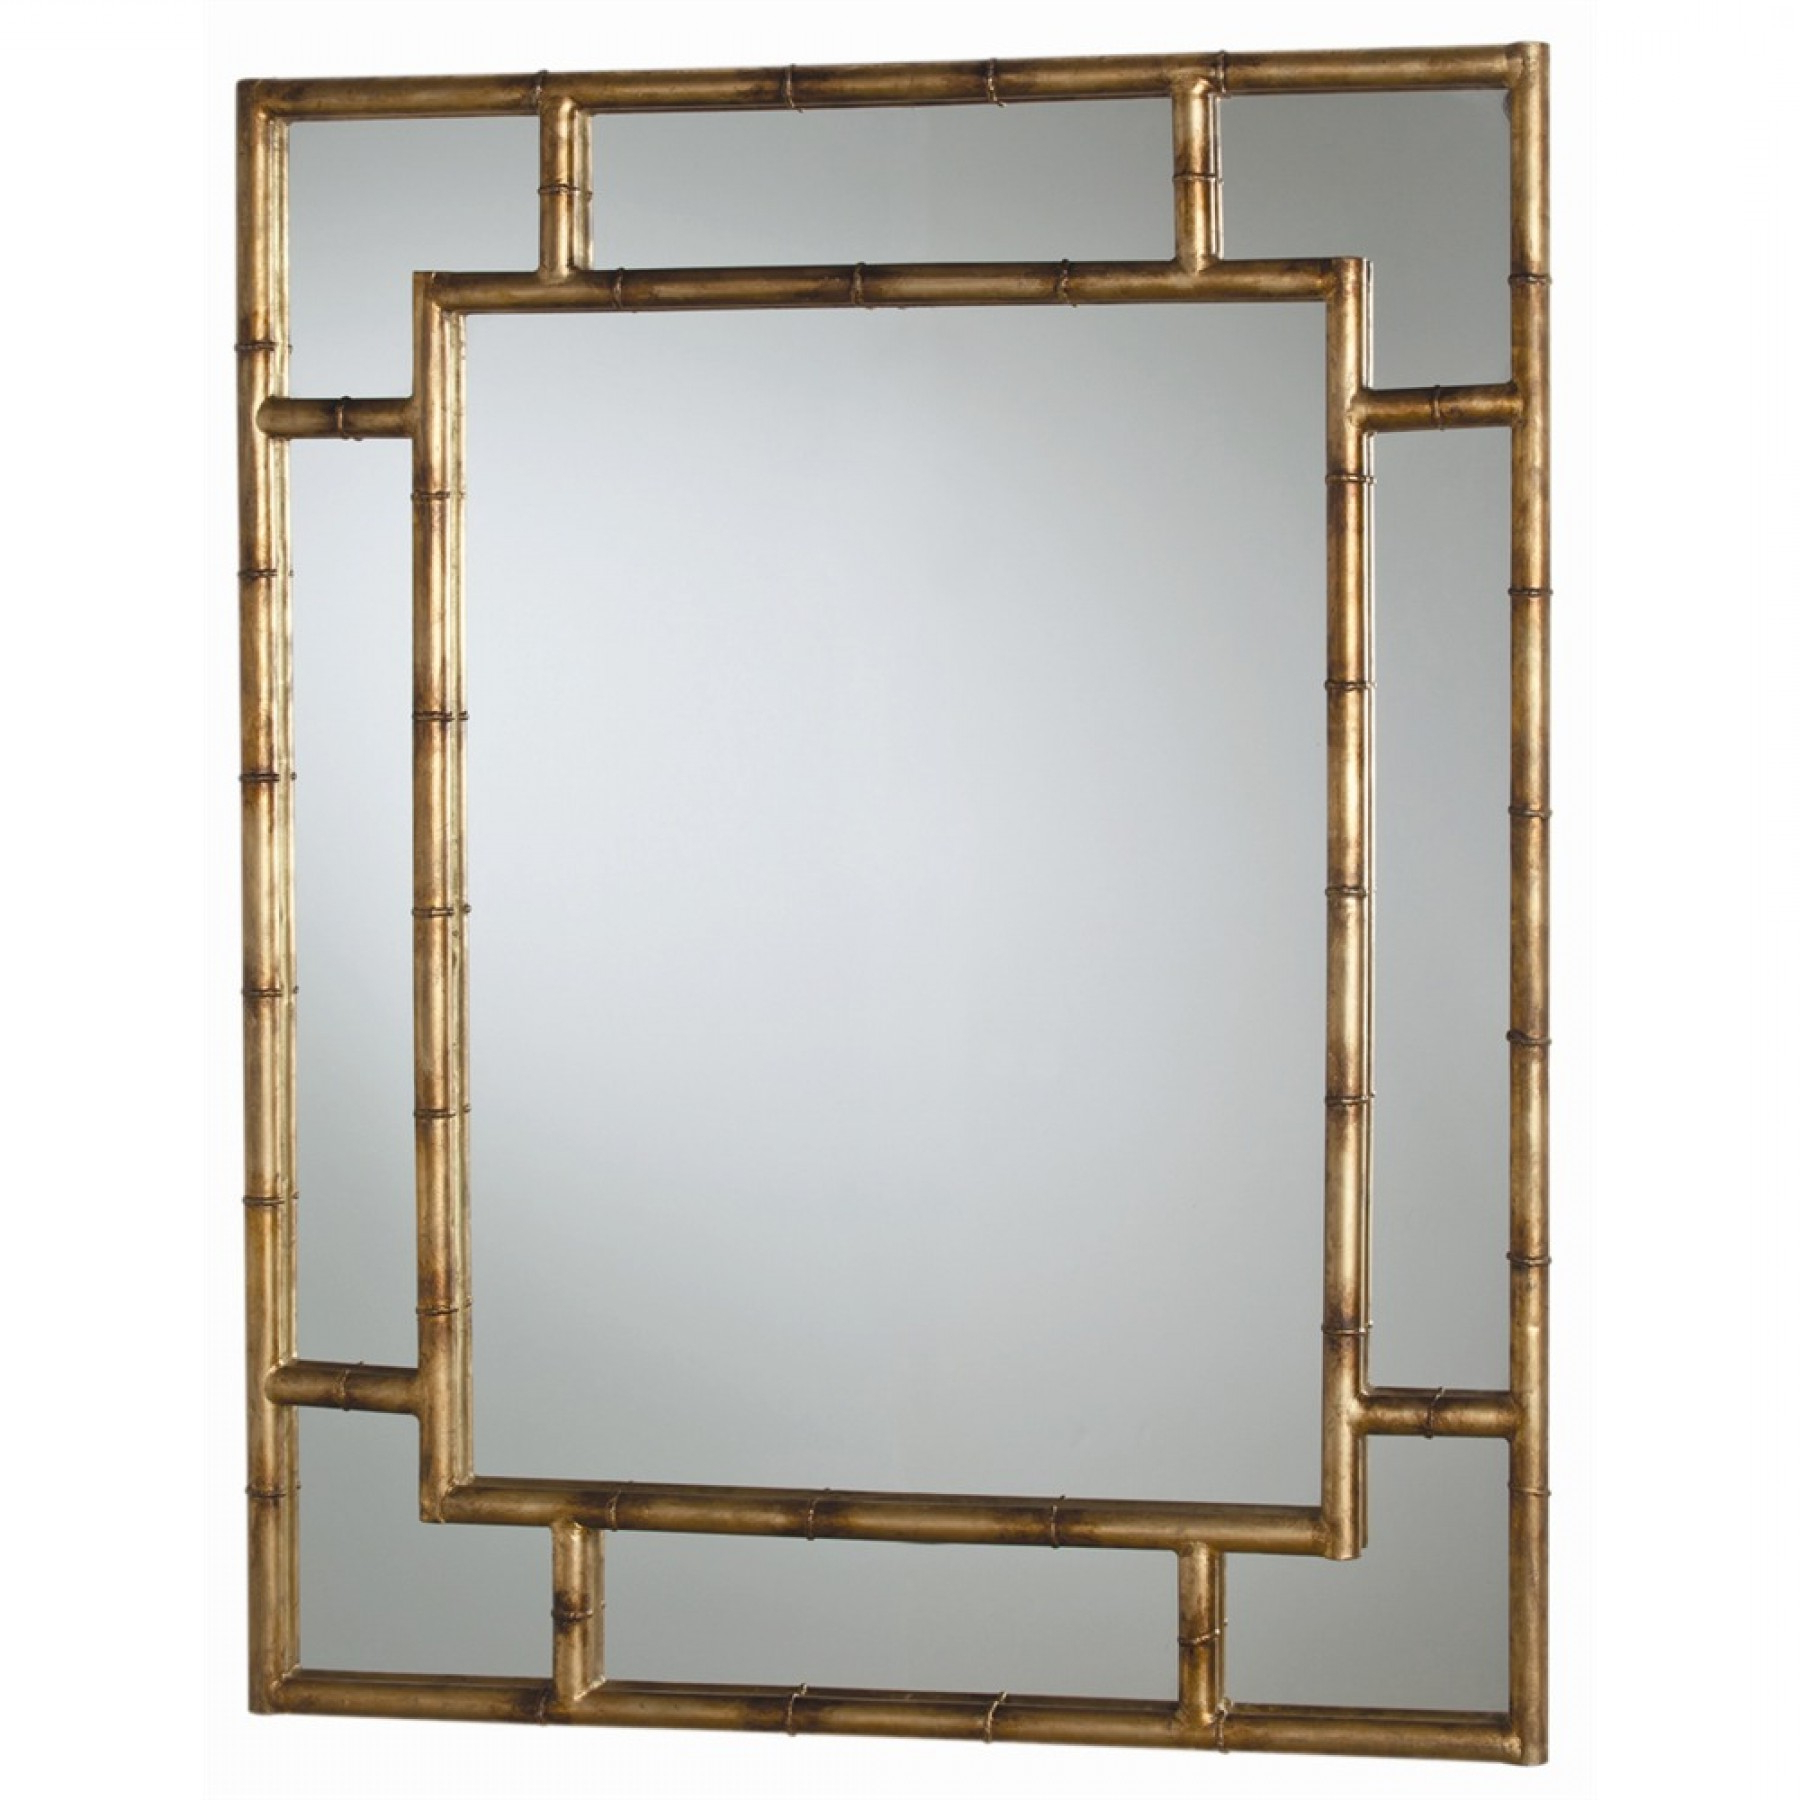 Porter Mirror Pertaining To Most Current Bamboo Framed Wall Mirrors (View 18 of 20)